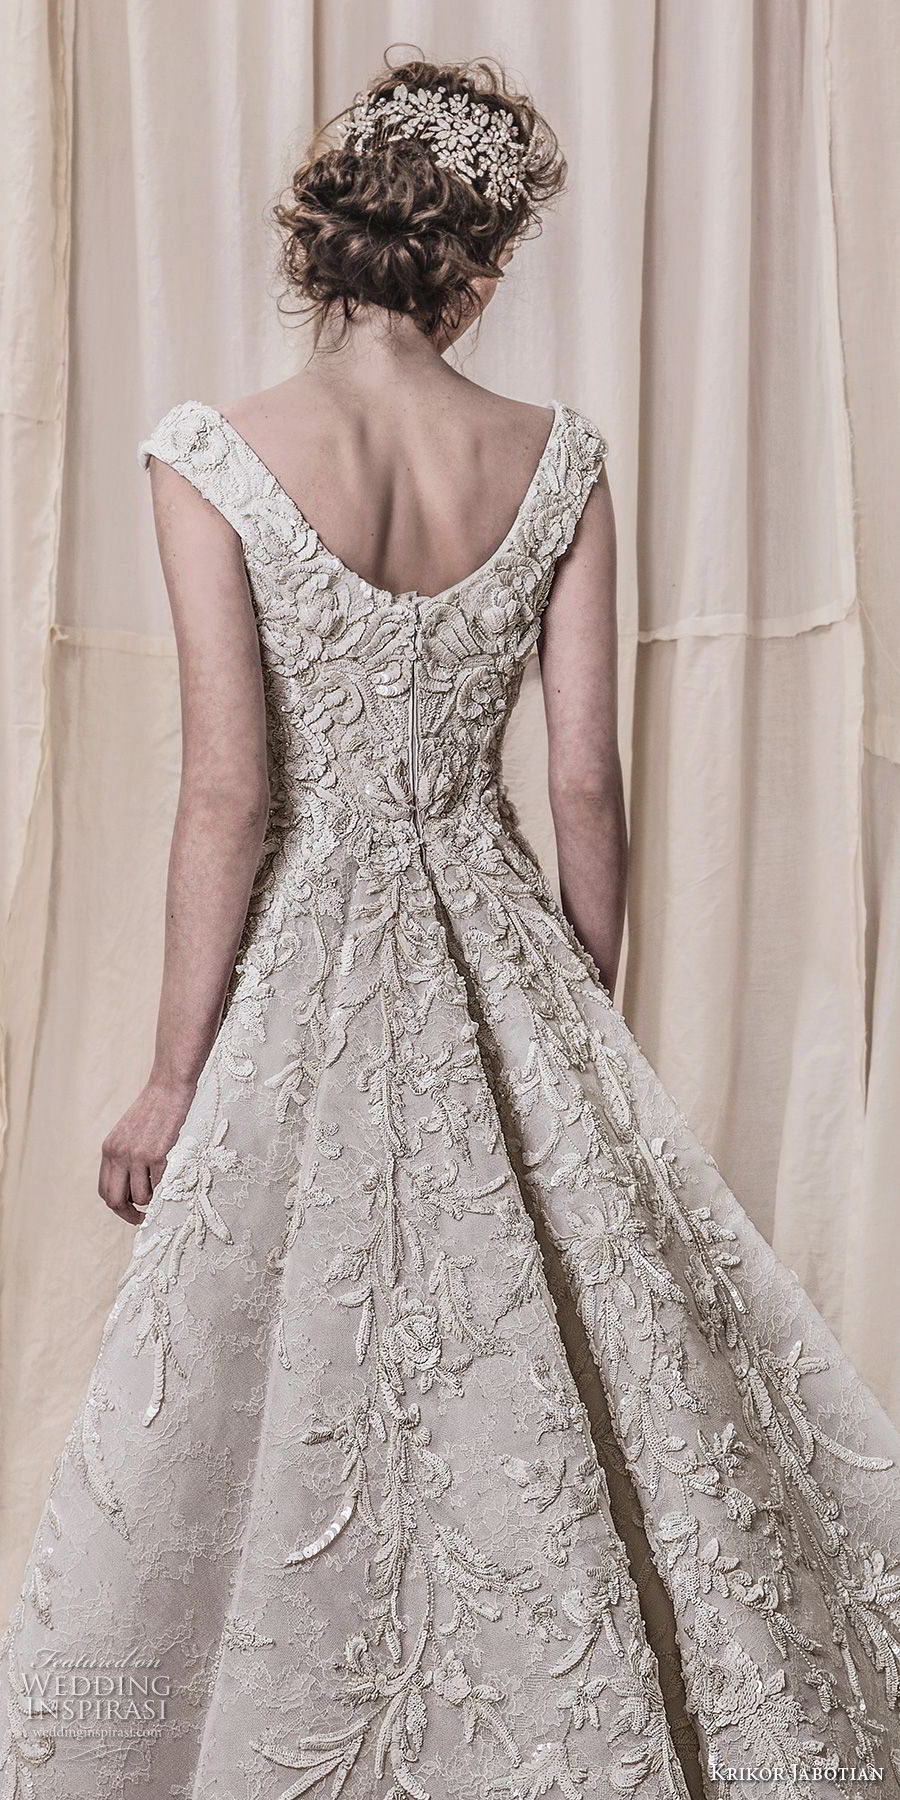 krikor jabotian spring 2018 bridal cap sleeves scoop neckline full embellishment elegant glamorous sheath wedding dress a  line overskirt chapel train (10) zbv